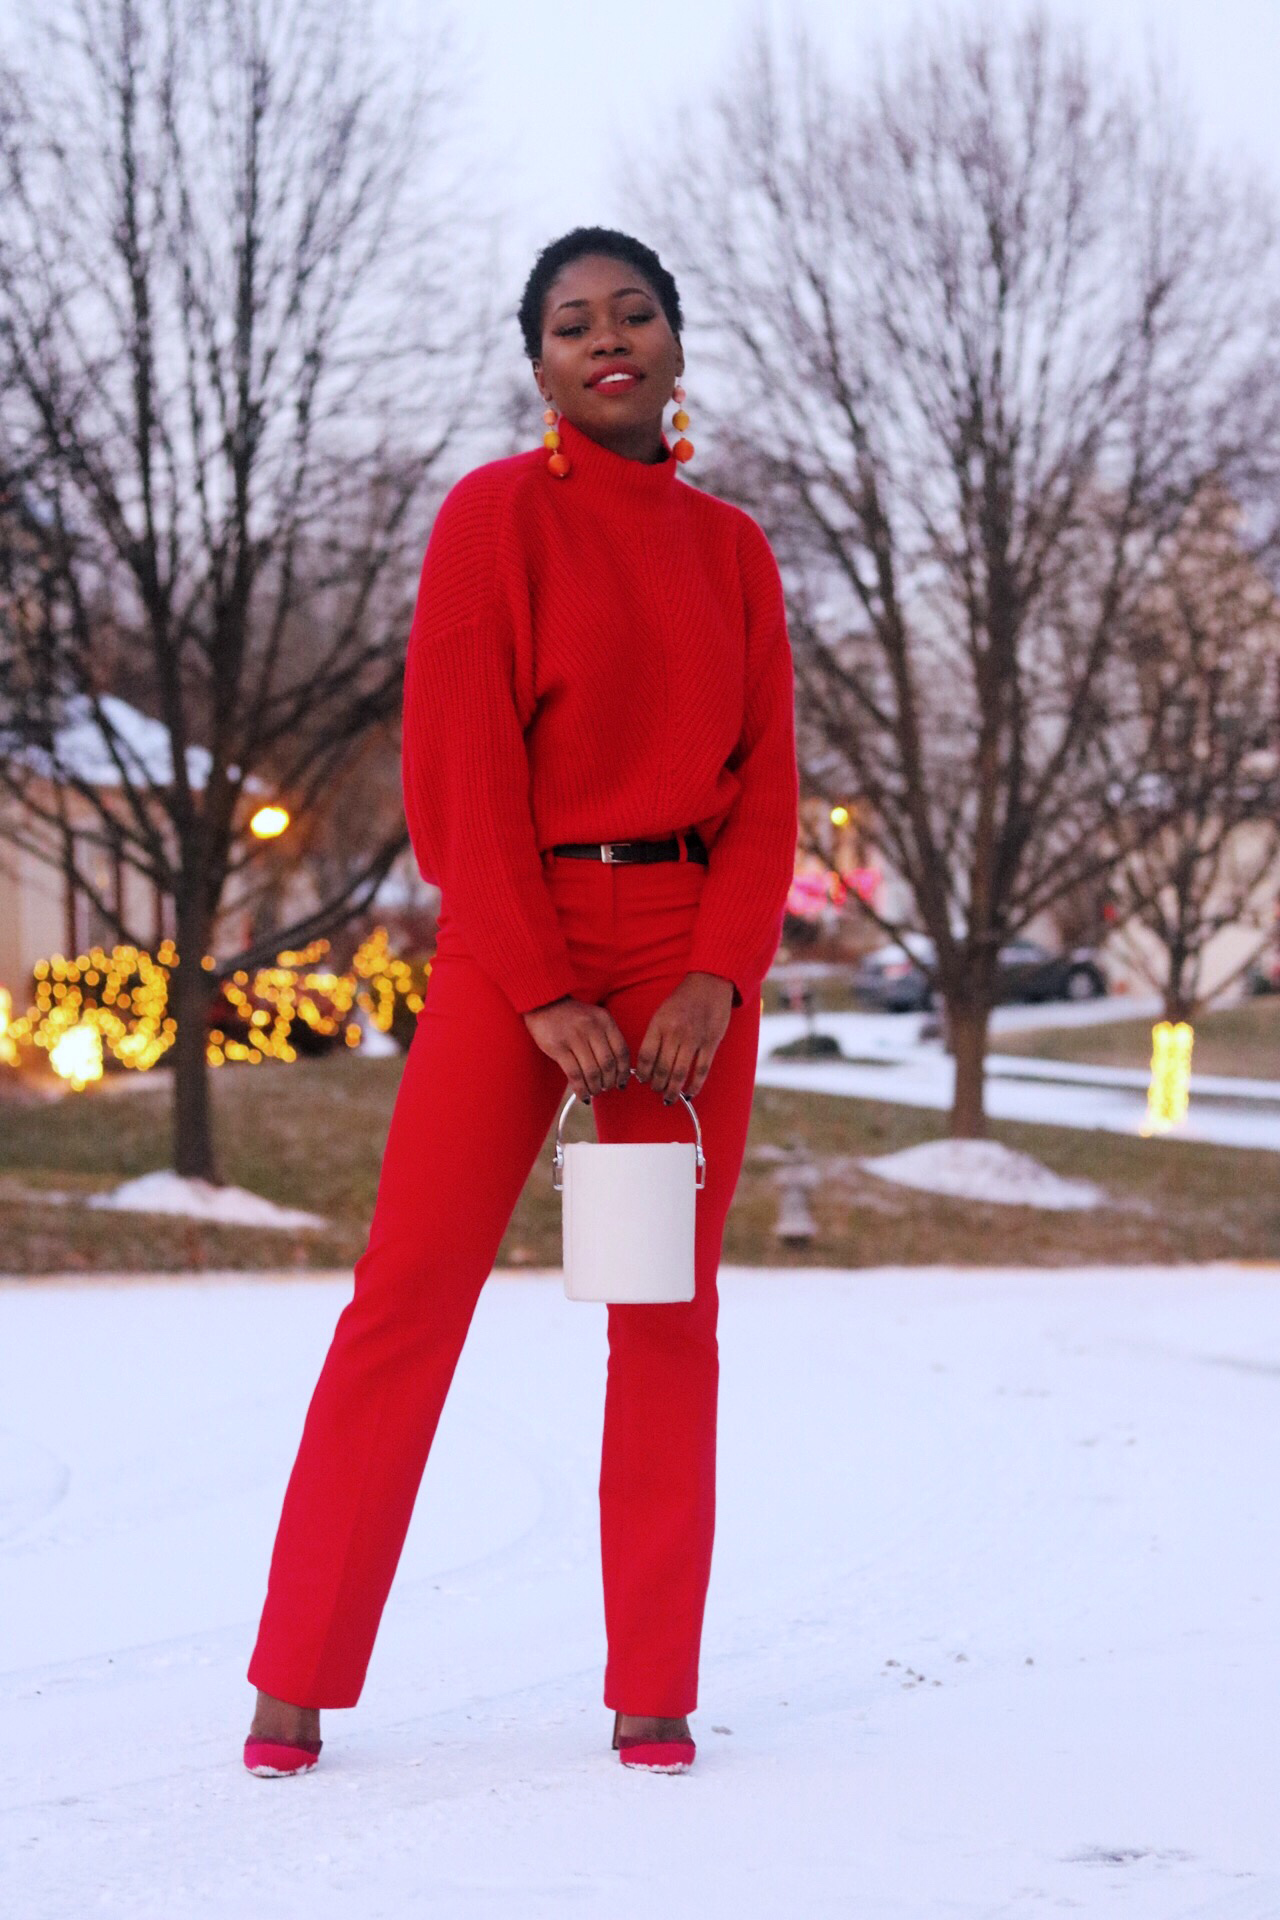 ALT= RED CHRISTMAS PARTY OUTFIT